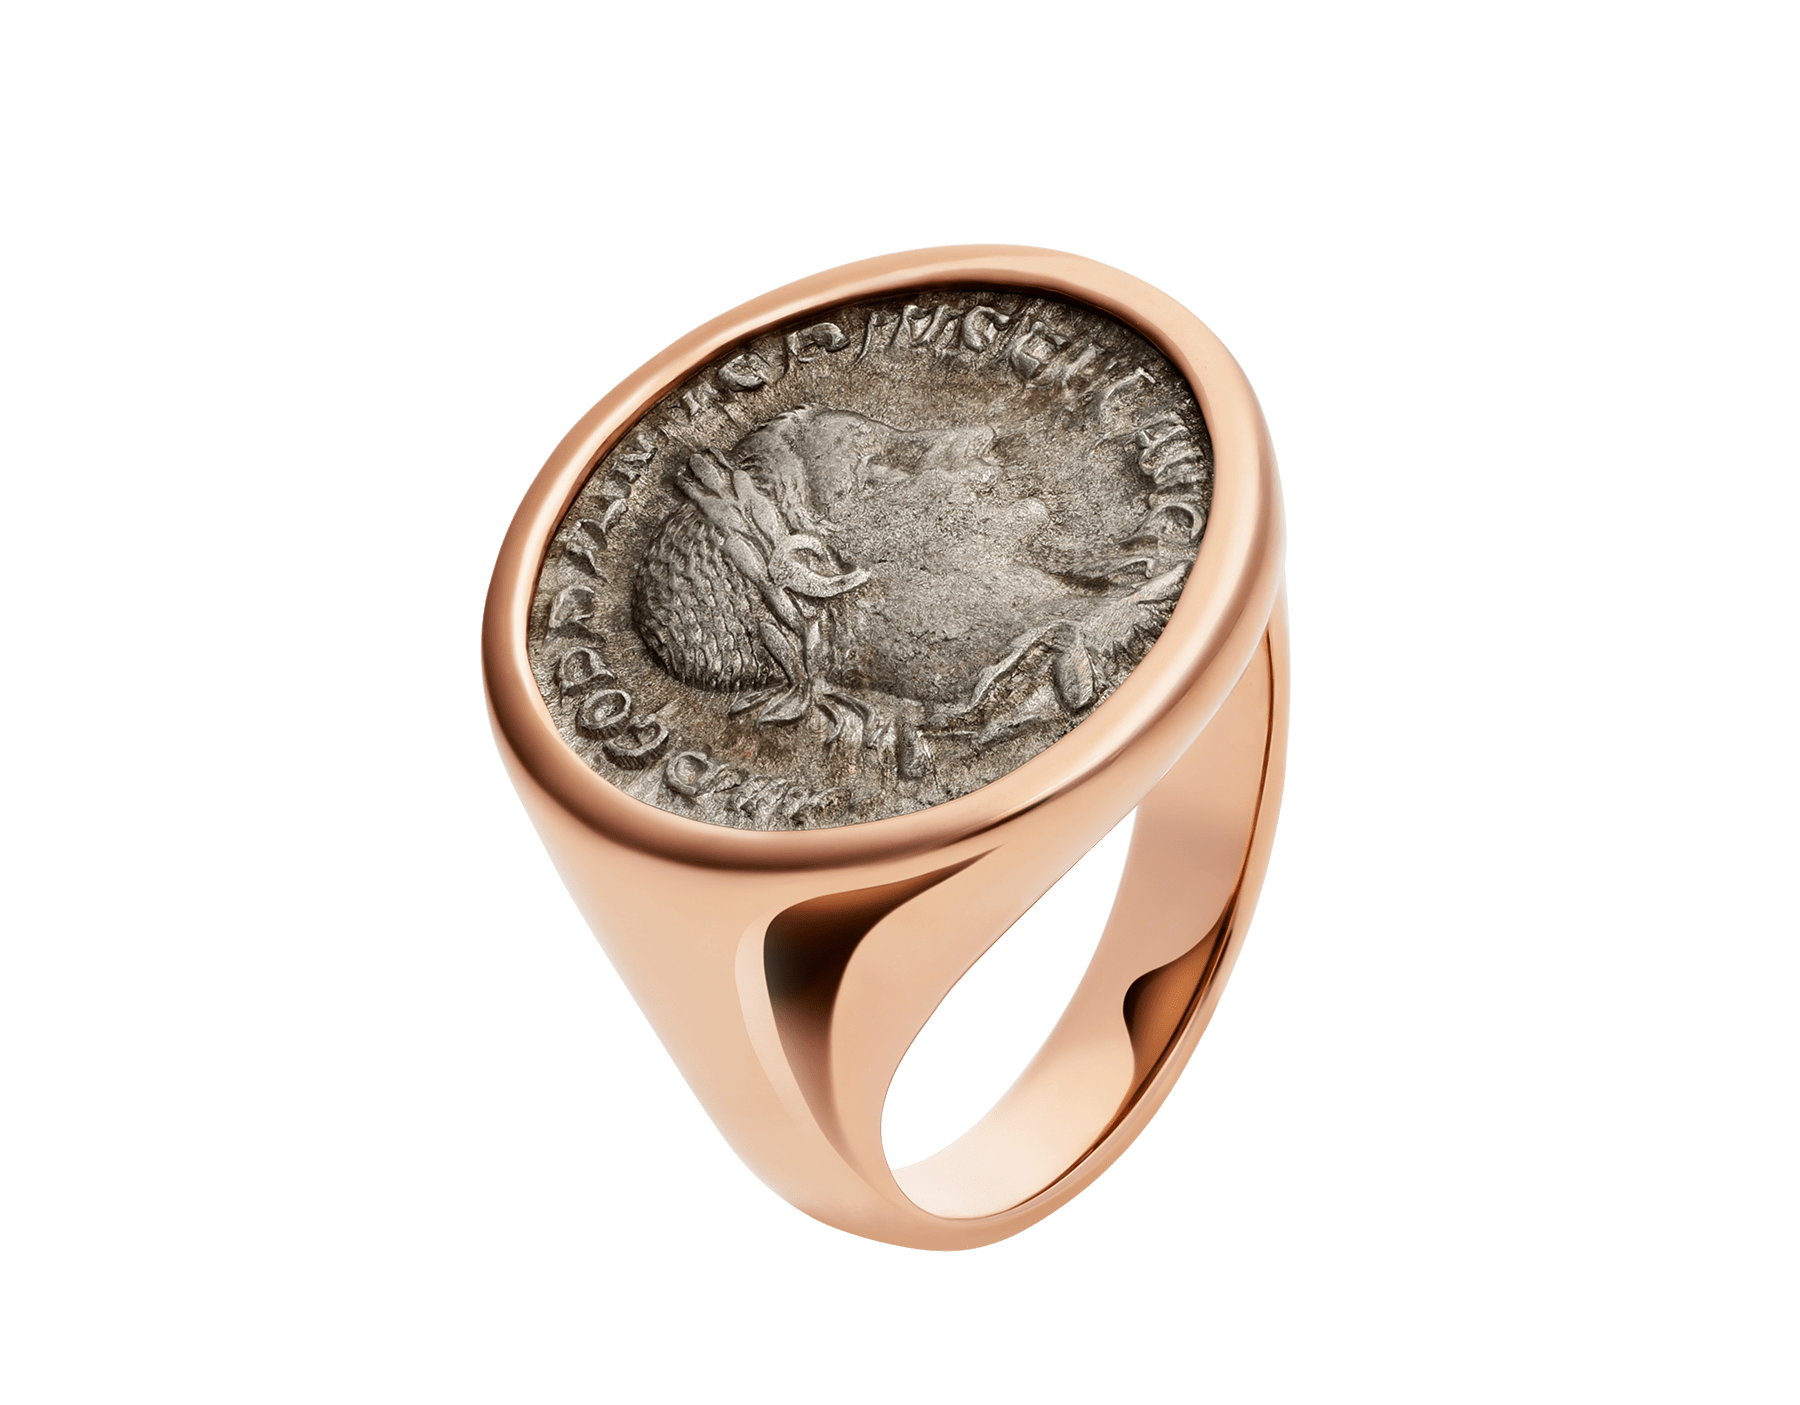 Monete 18 kt rose gold ring set with antique bronze or silver coin AN856864 image 1